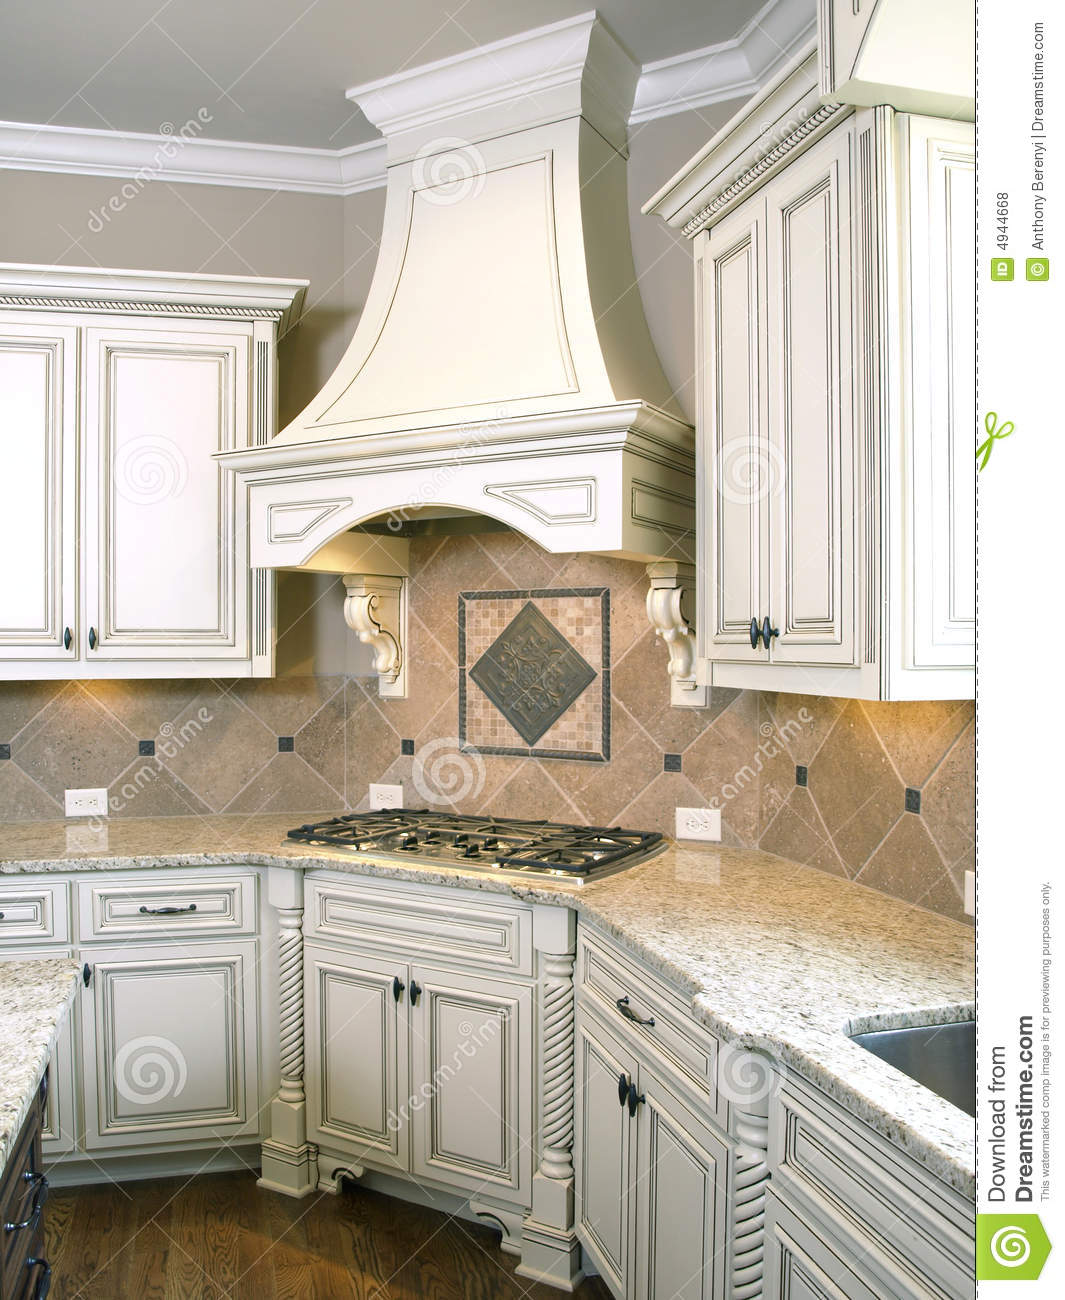 kitchen cabinet plans crocks luxury cooktop with hood stock photo - image: 4944668